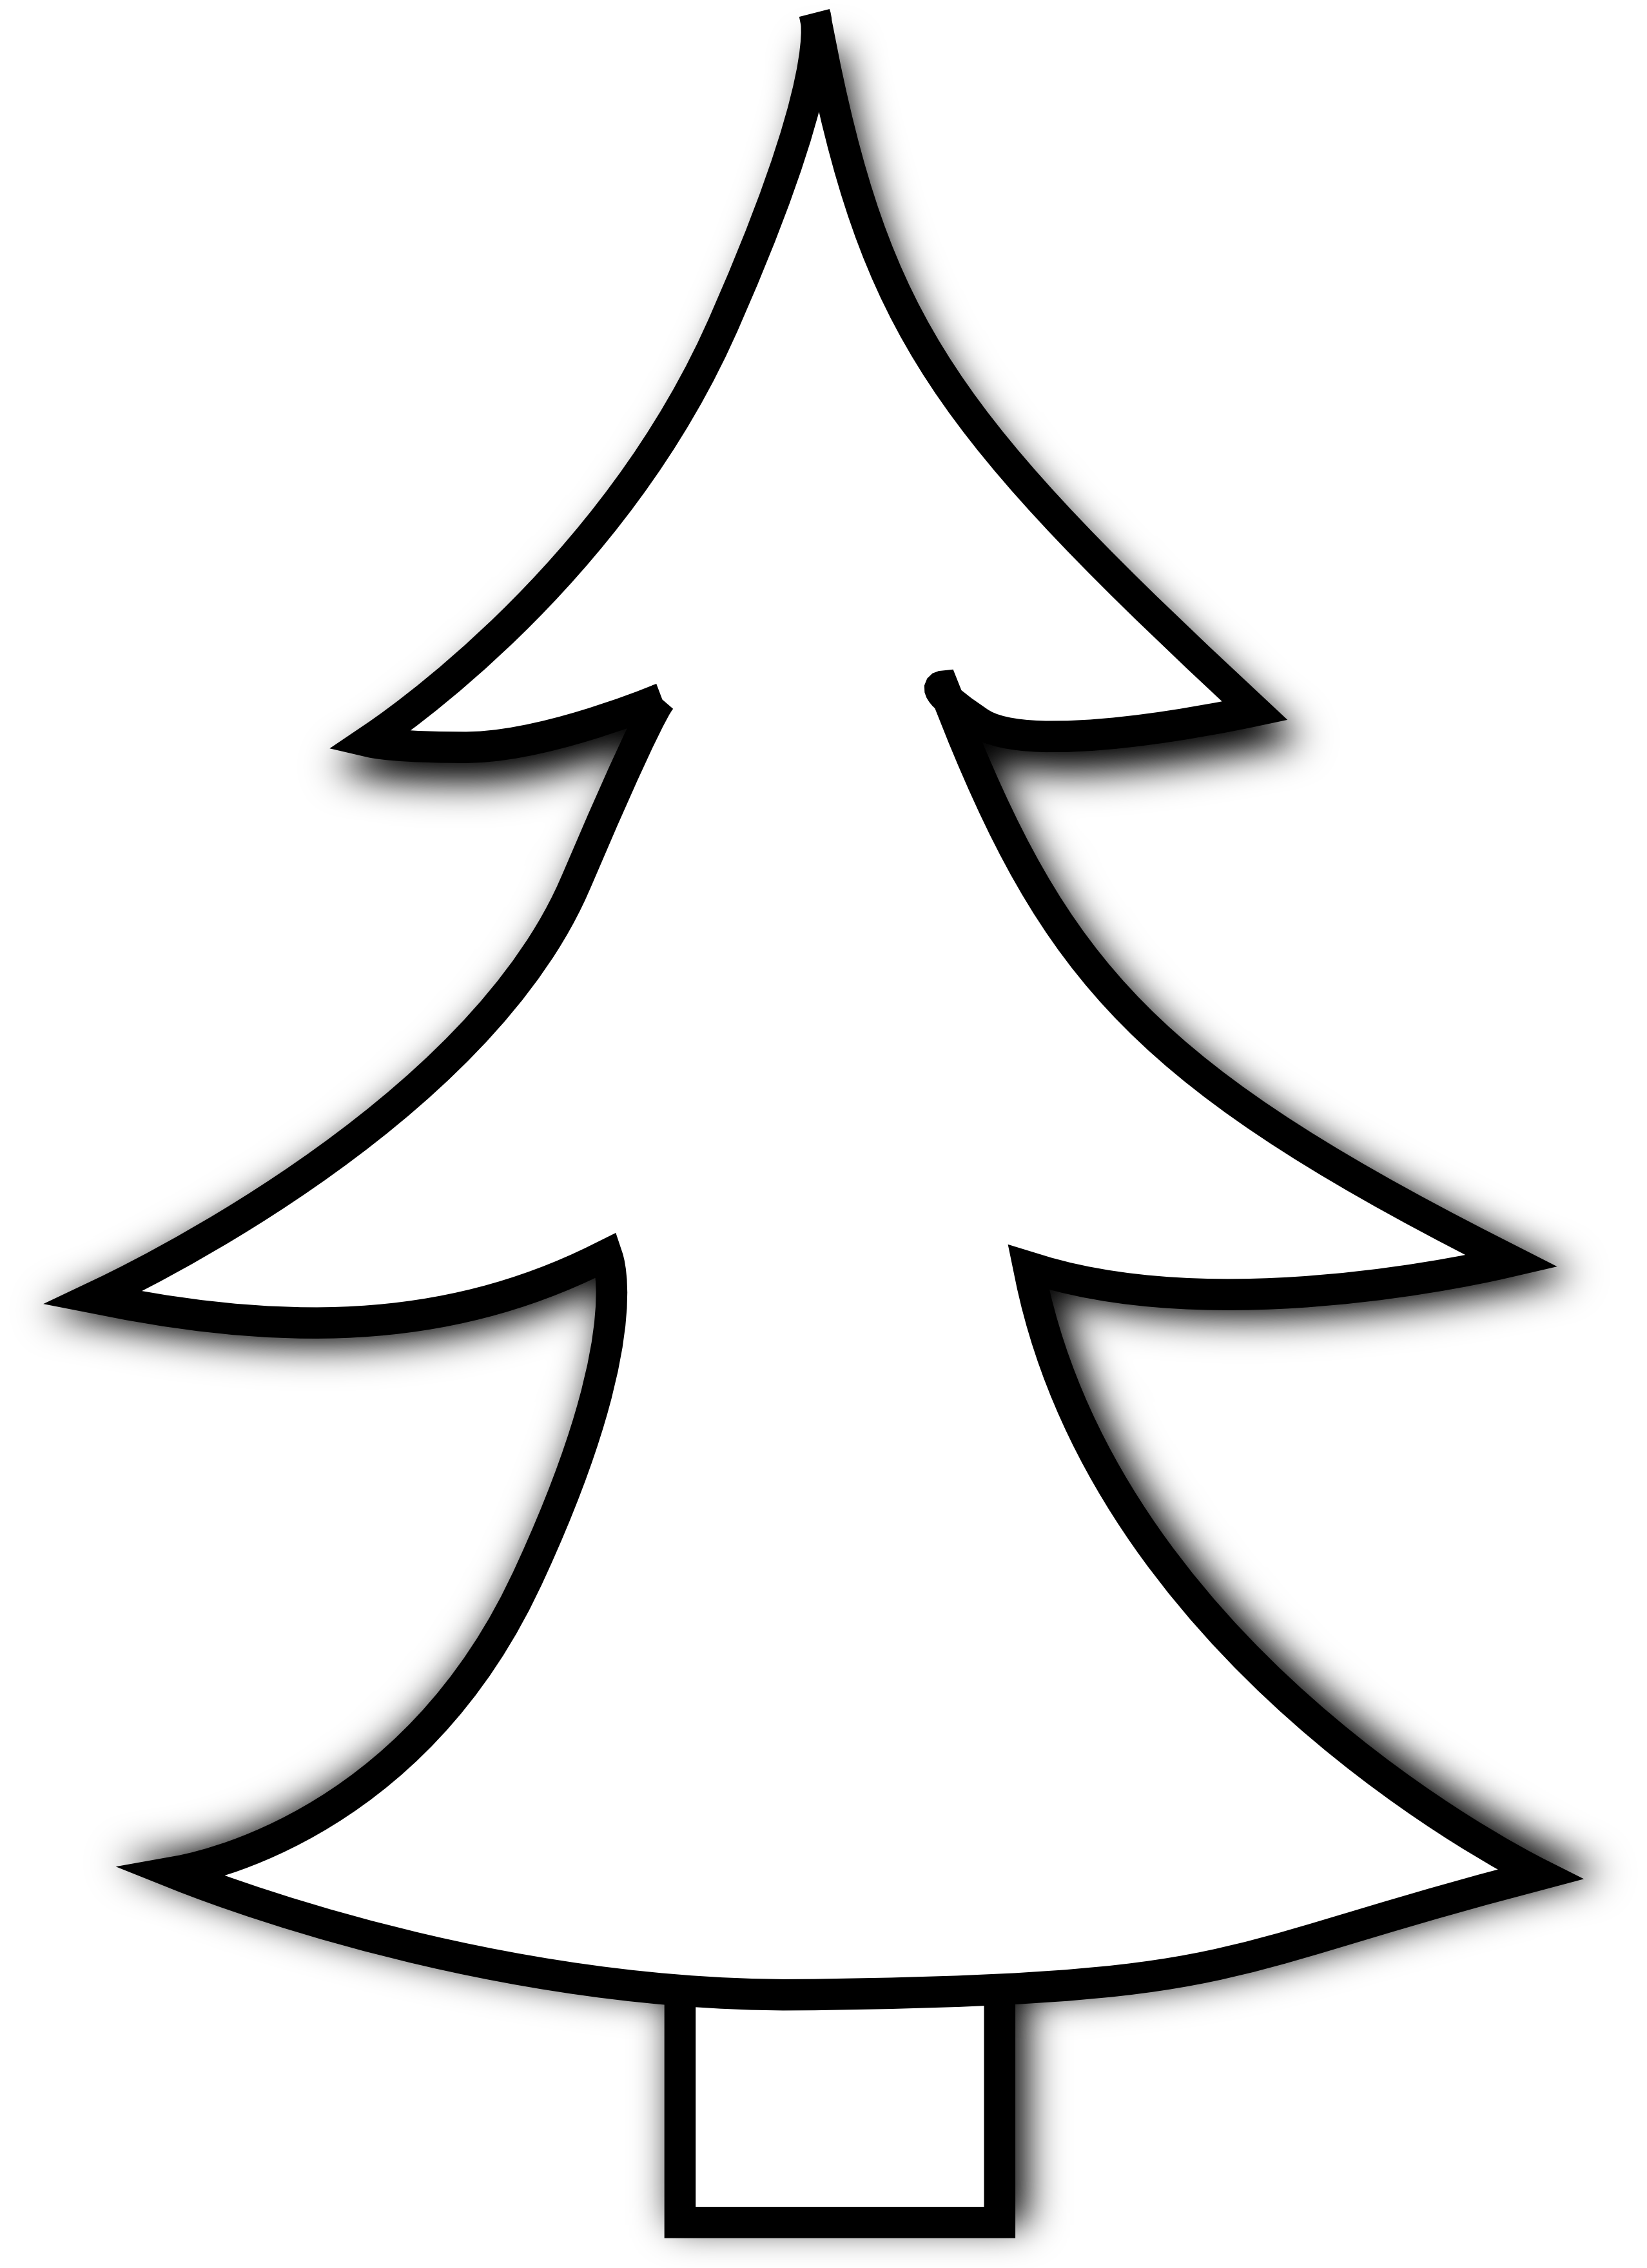 2555x3519 Transparent Background Black And White Christmas Tree Clip Art